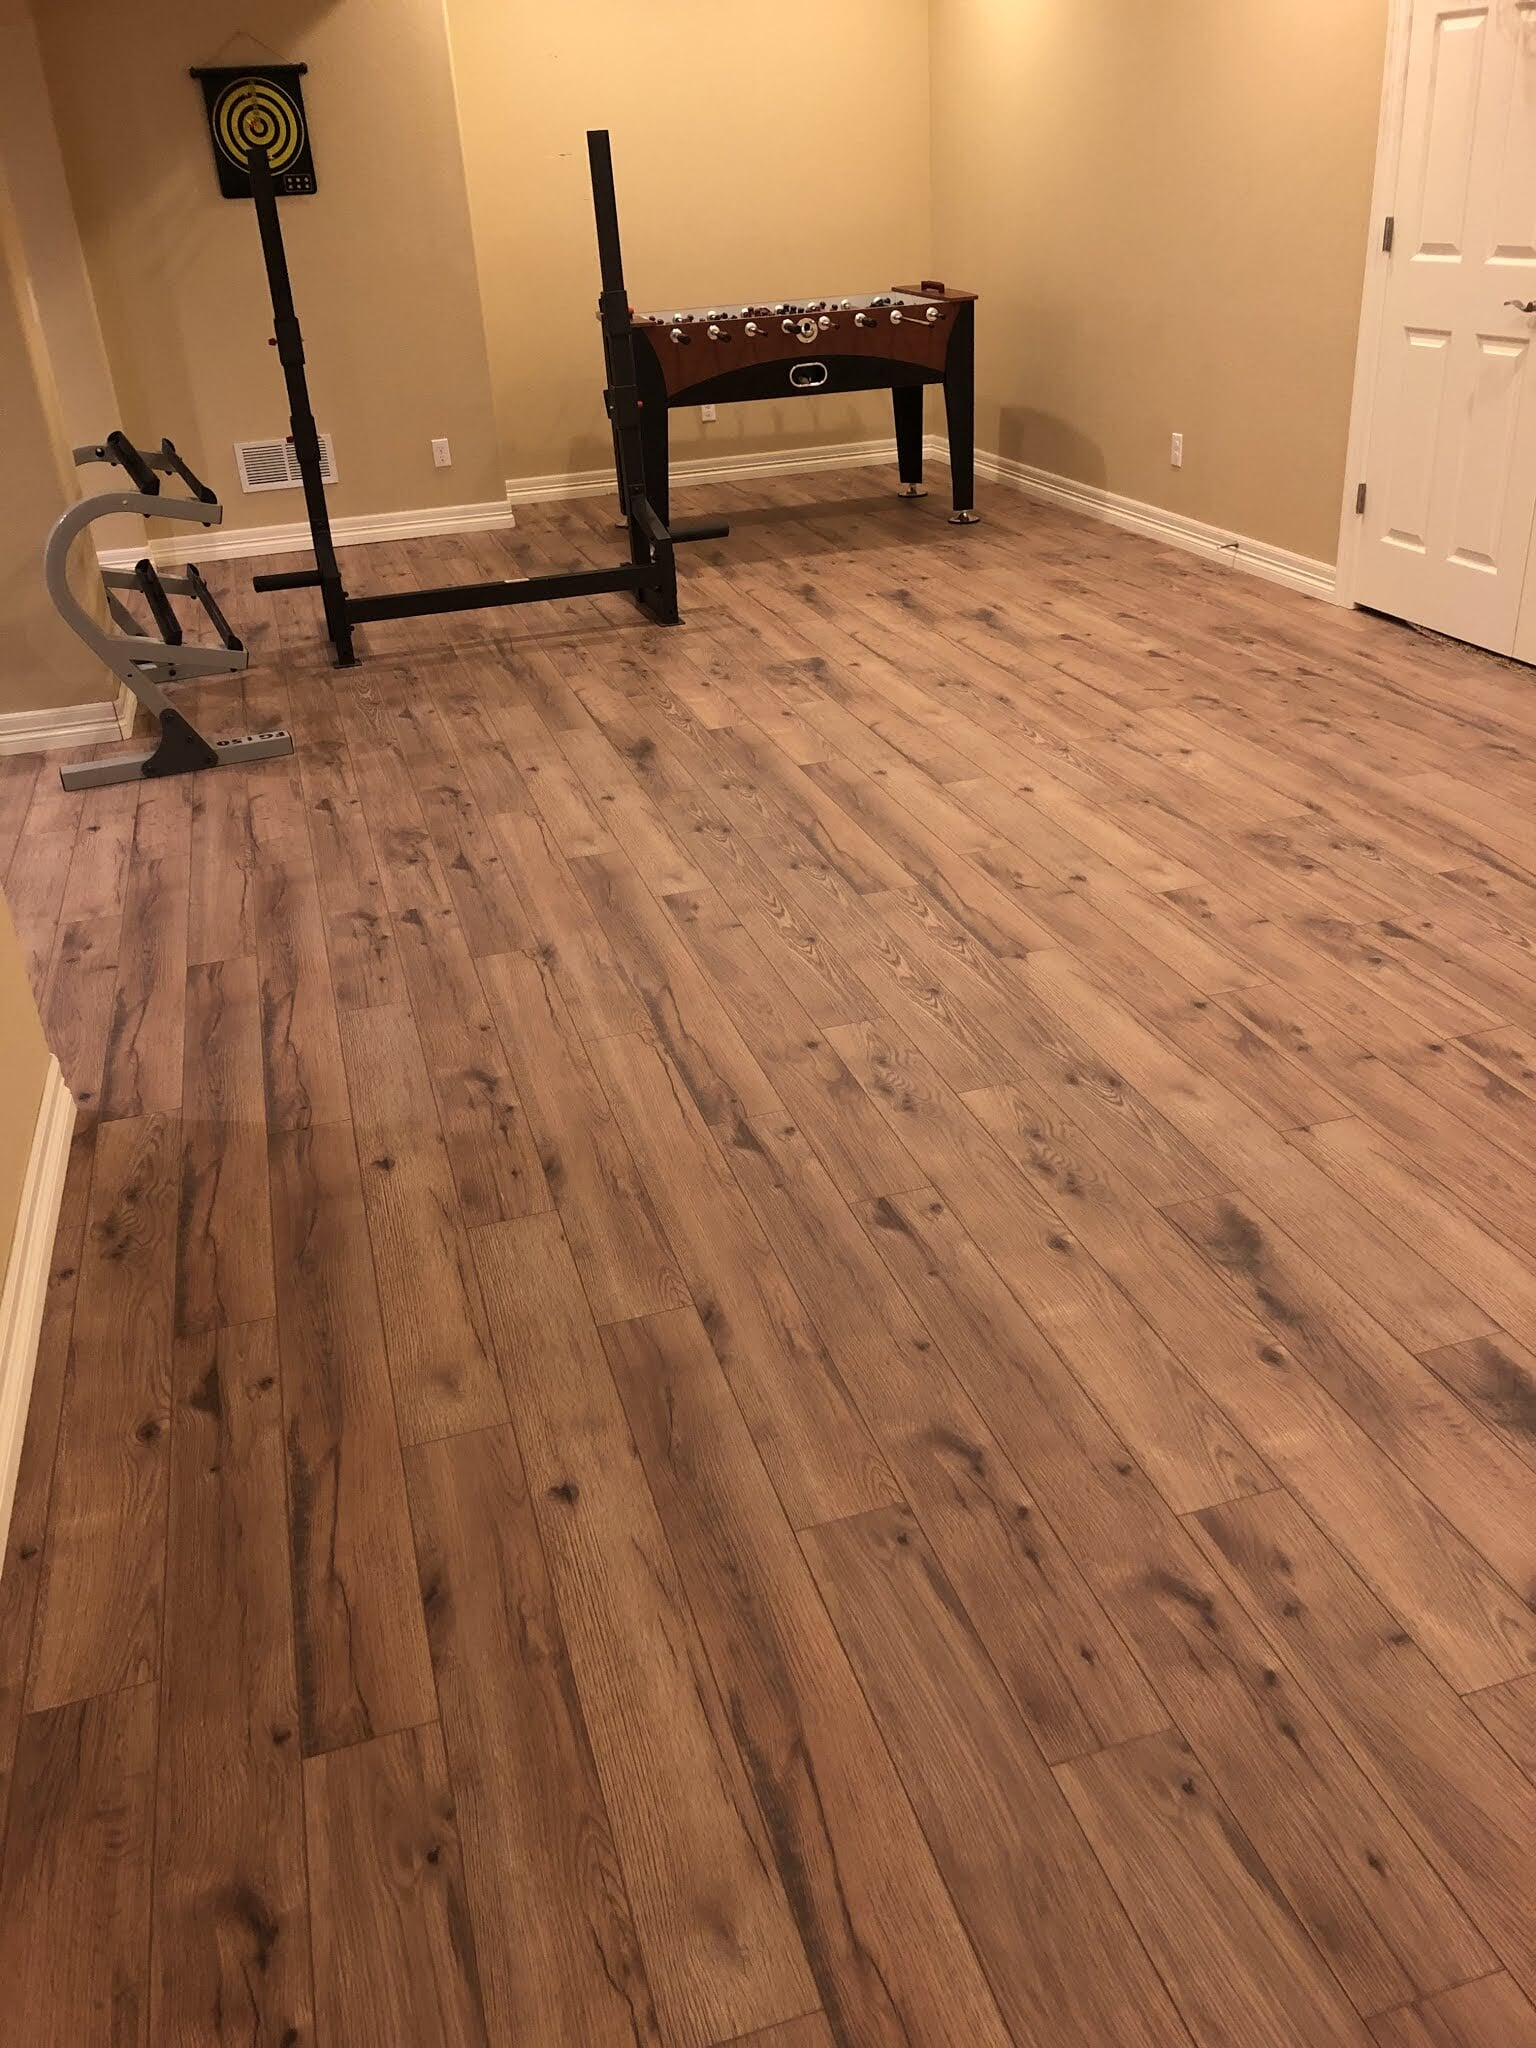 Wooden plank floors in Lakewood, CO from FH Flooring